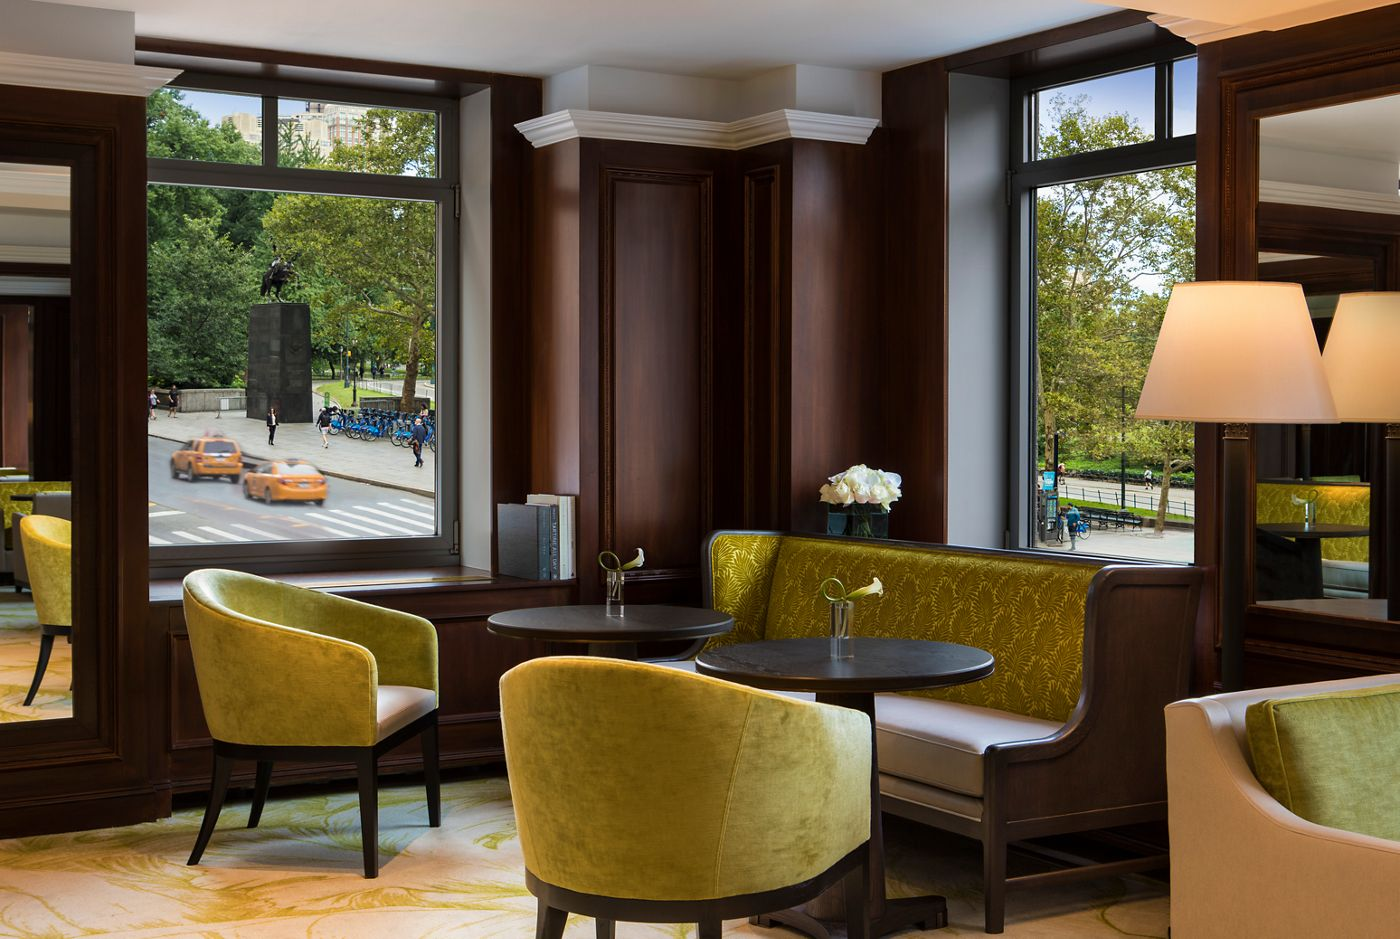 Ritz-Carlton New York, Central Park Debuts New Look2